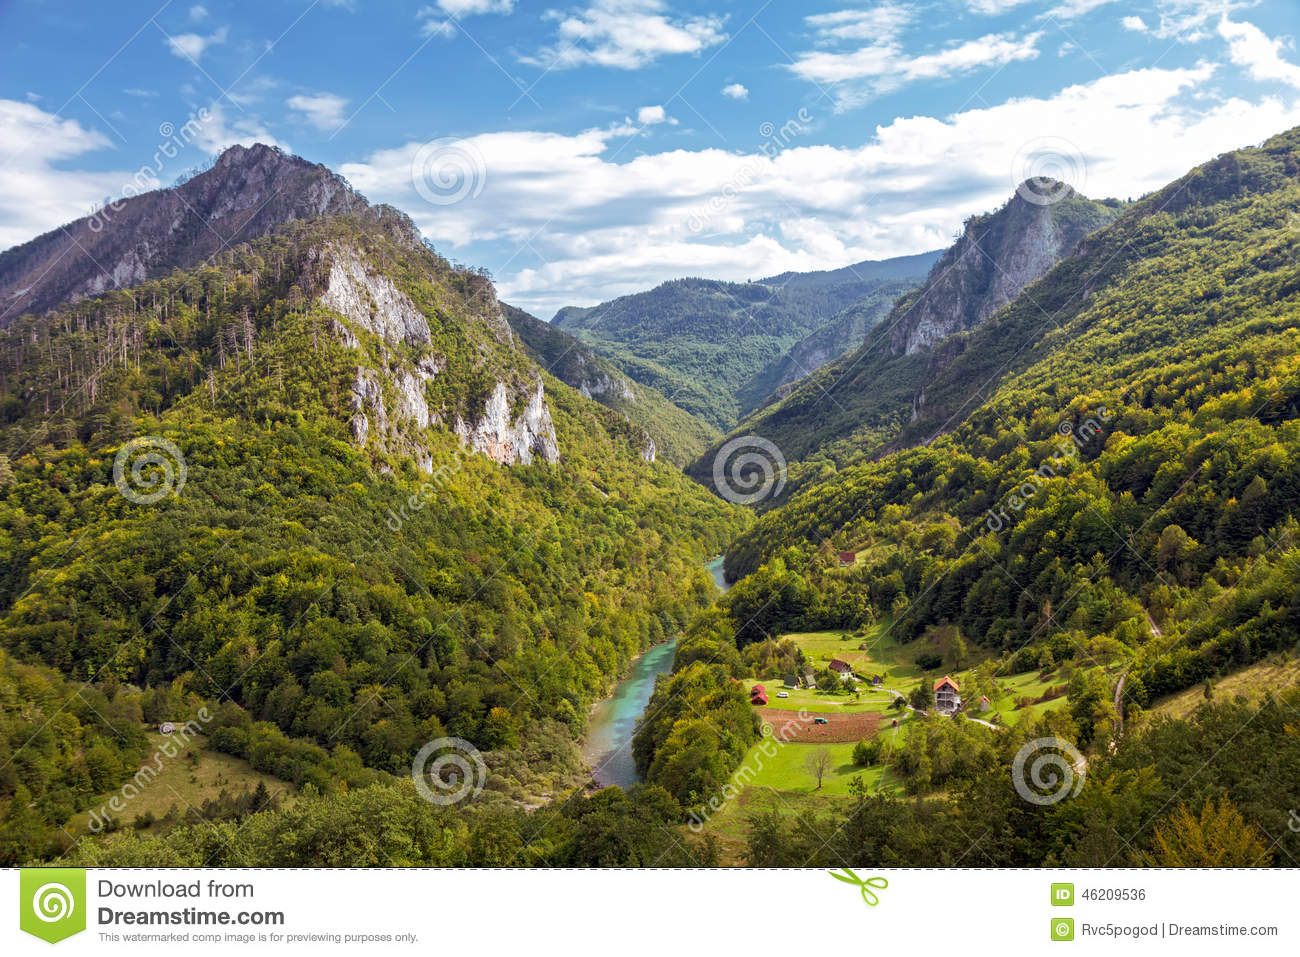 Landscape with mountains and canyon of river Tara, Montenegro.